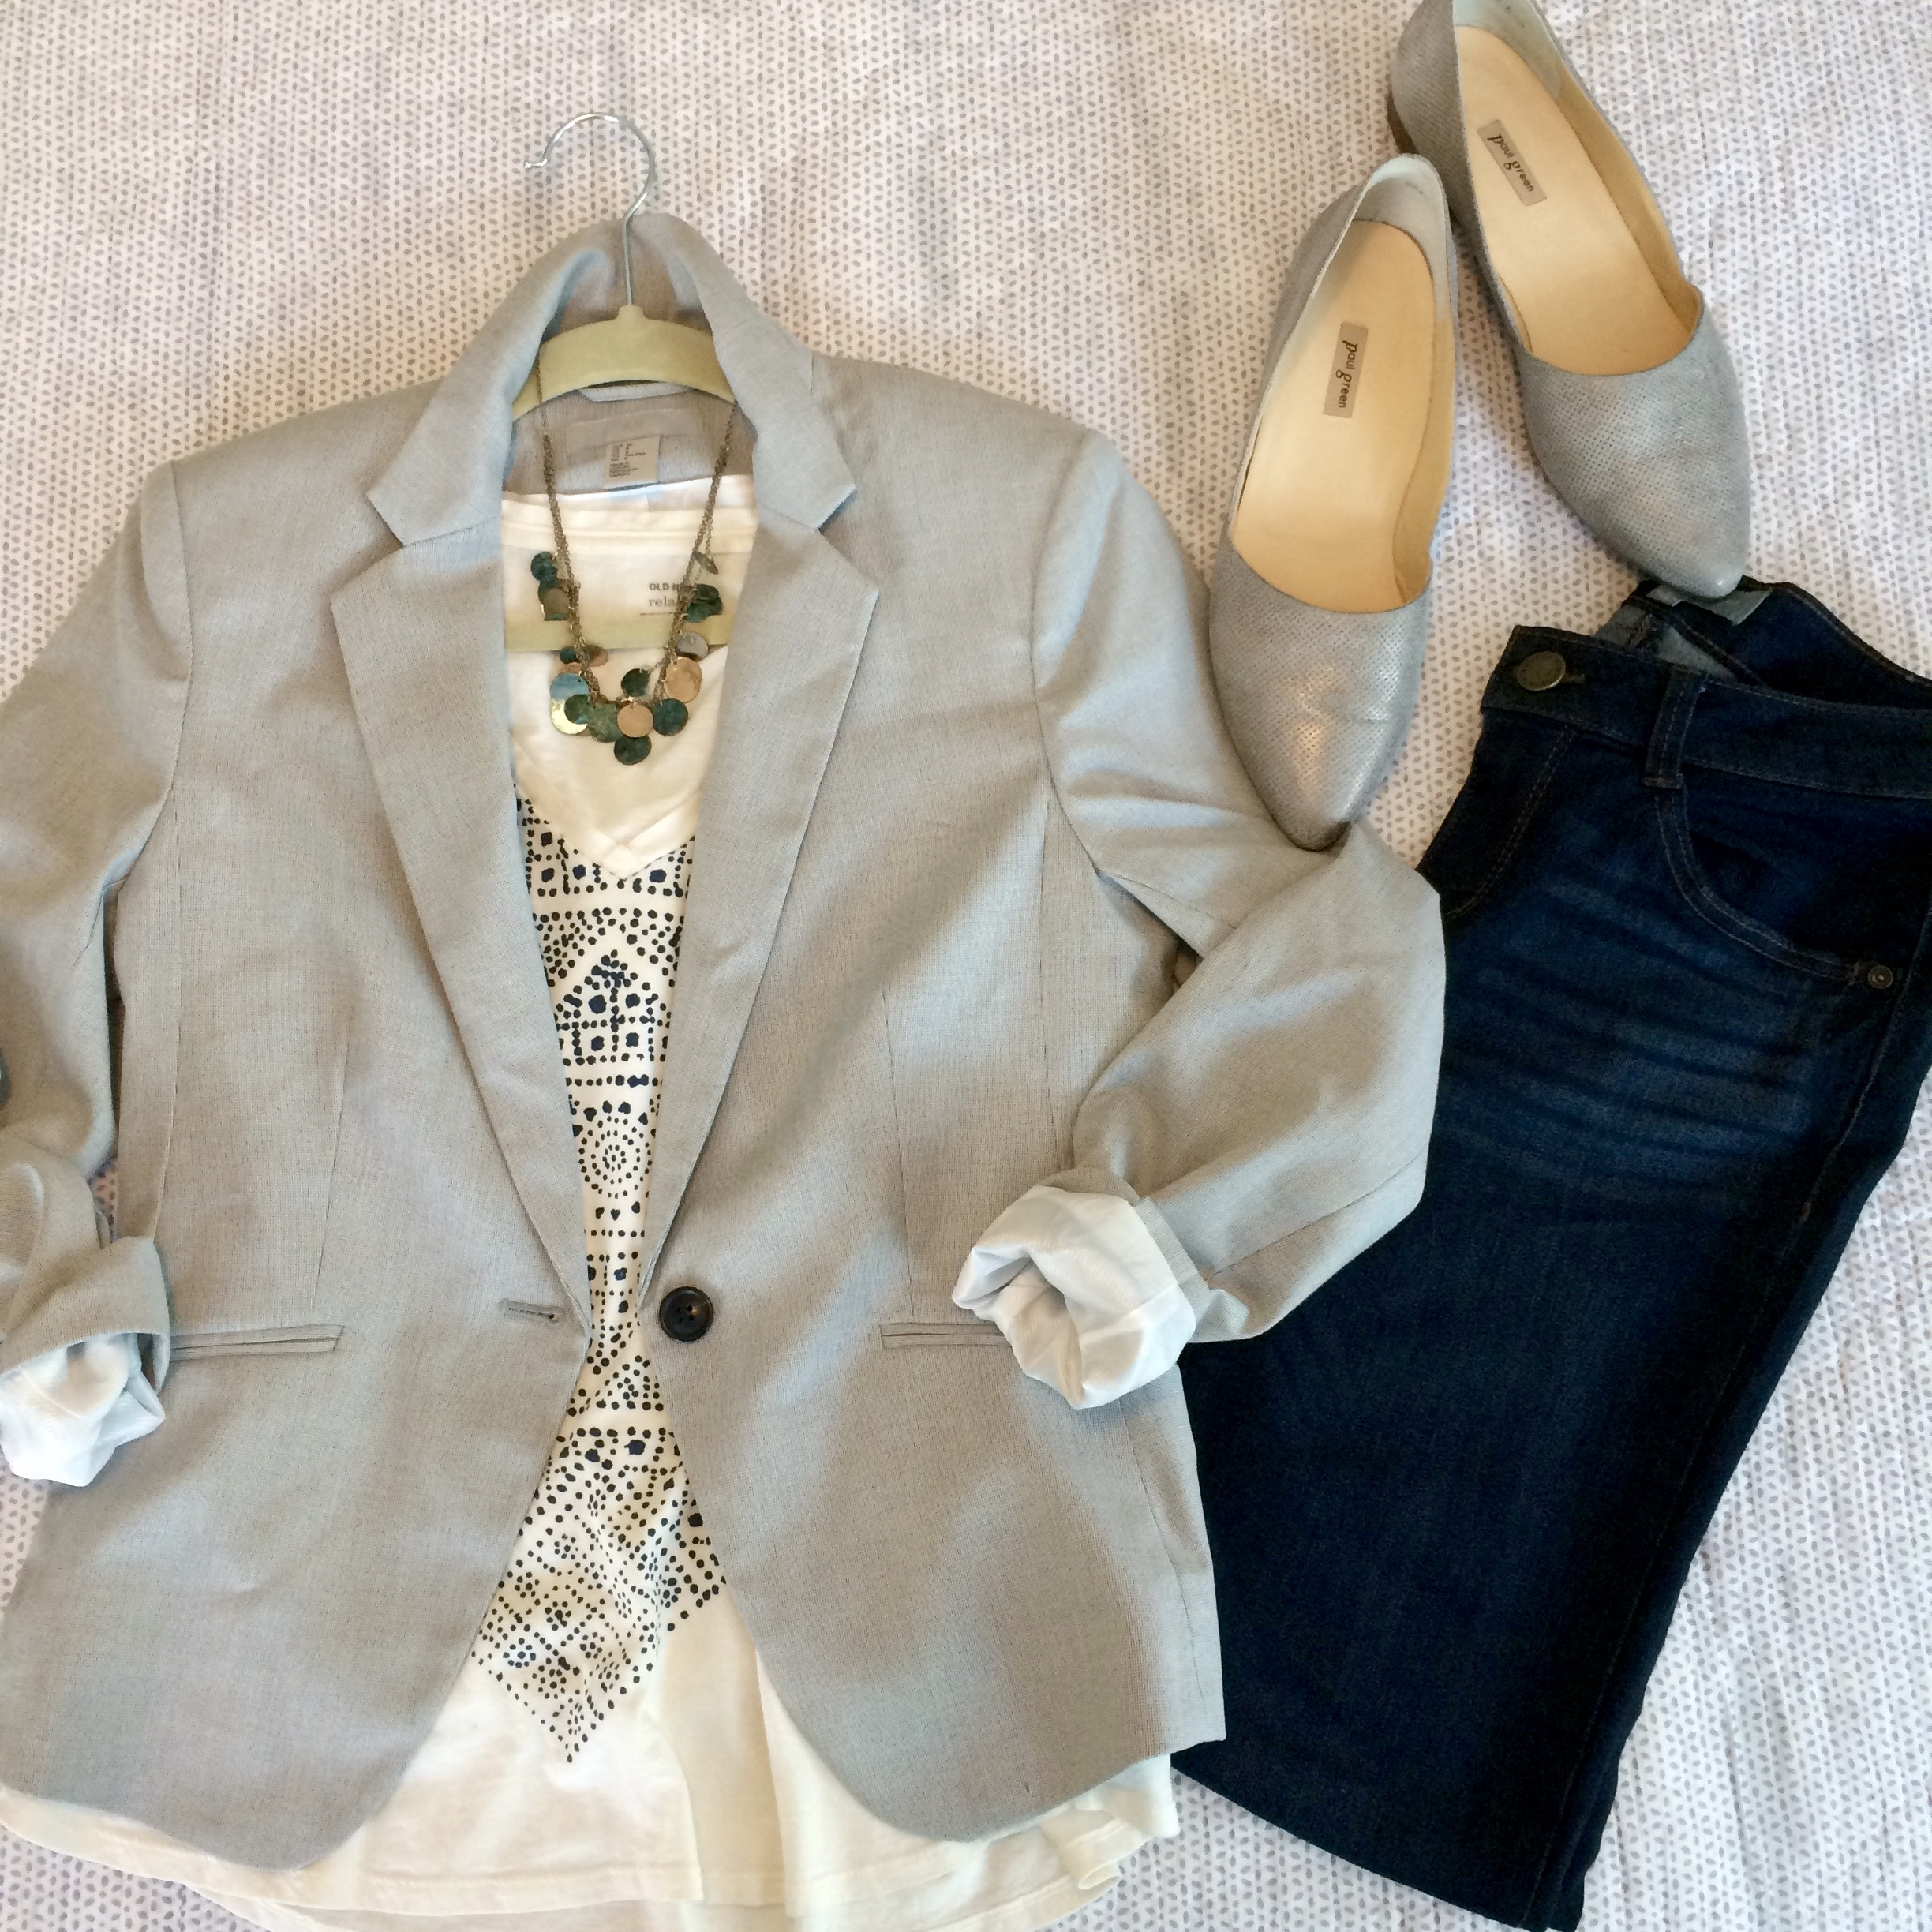 blazer, t-shirt and jeans.jpg